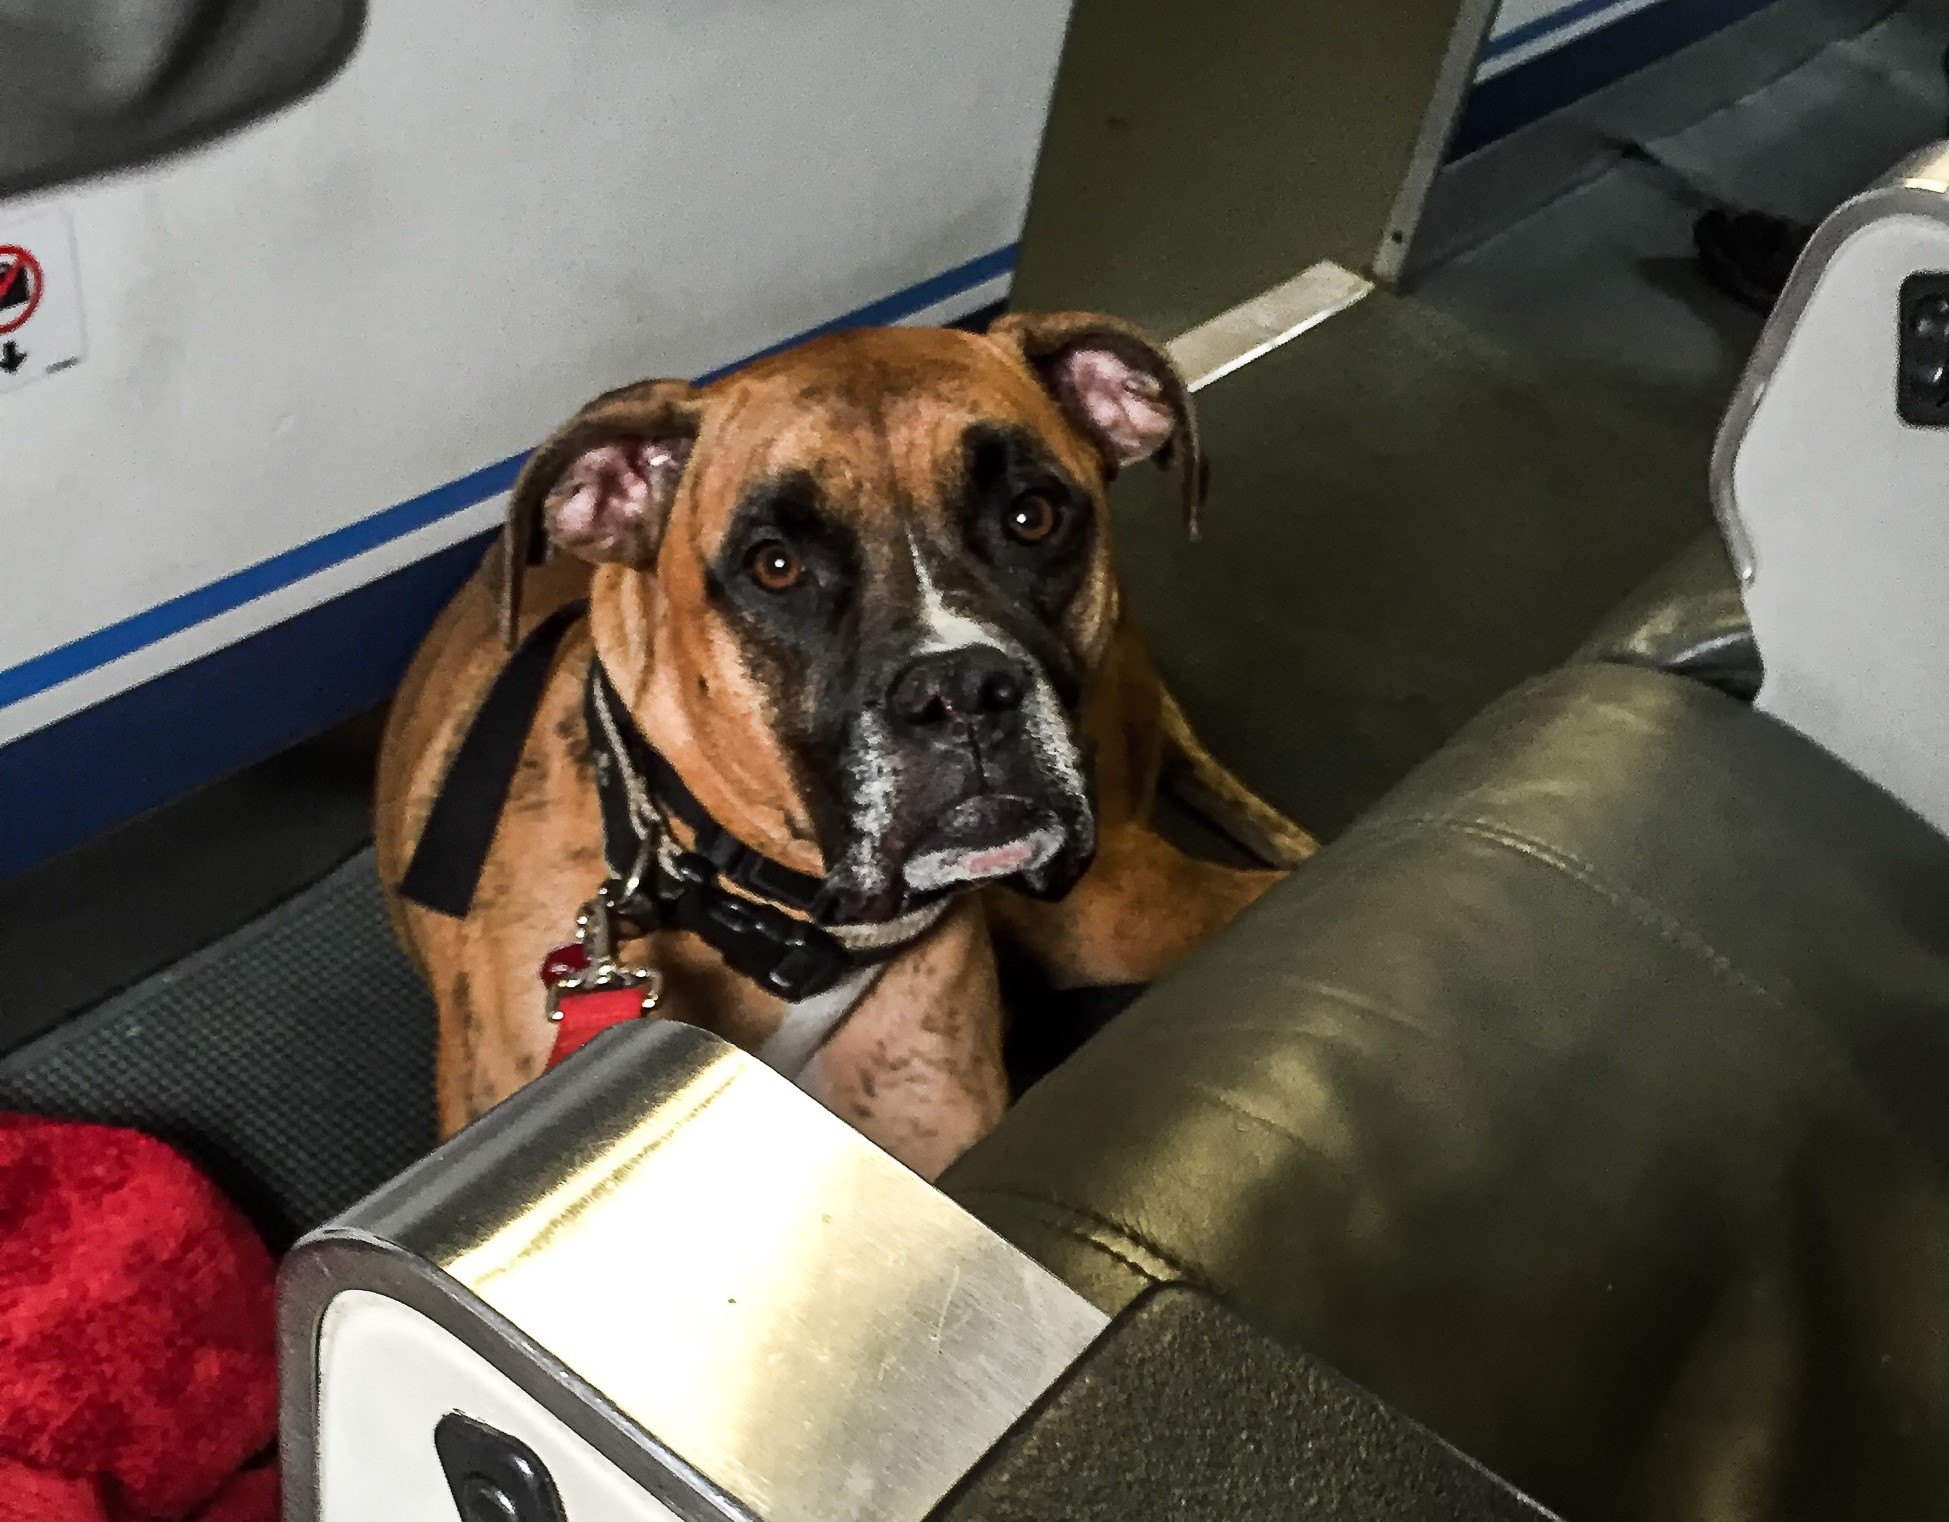 dog sits on the floor in an airplane